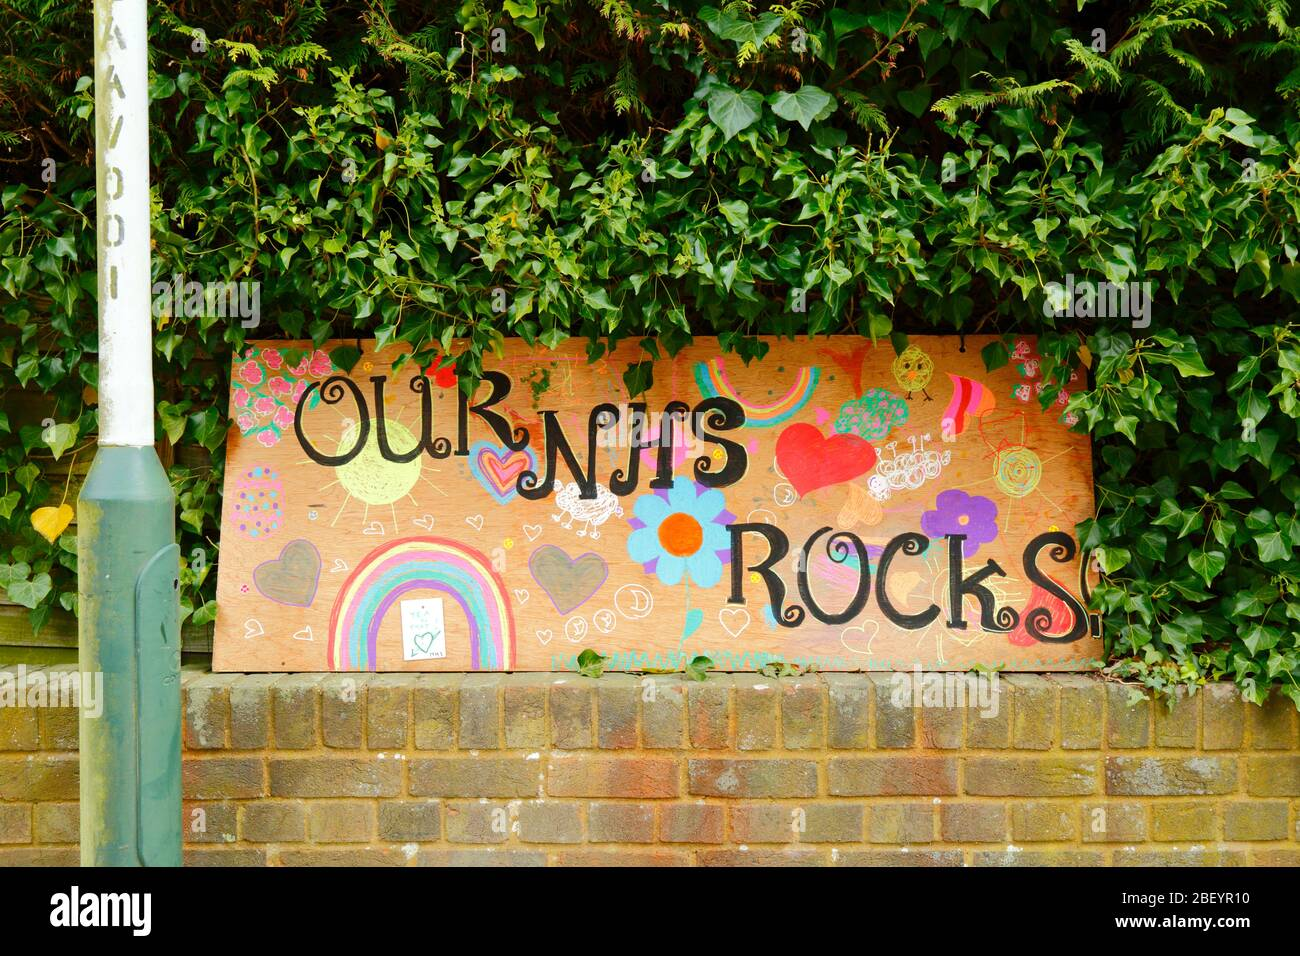 16th April 2020, Southborough, Kent, UK: Child's drawings of a rainbow, hearts and Our NHS Rocks message for NHS staff and key workers on a plywood board outside a hedge in residential area during the government imposed quarantine / lockdown to reduce the spread of the coronavirus. Children across the country have been putting drawings of rainbows in windows to spread hope and encourage people to stay cheerful during the pandemic. Stock Photo